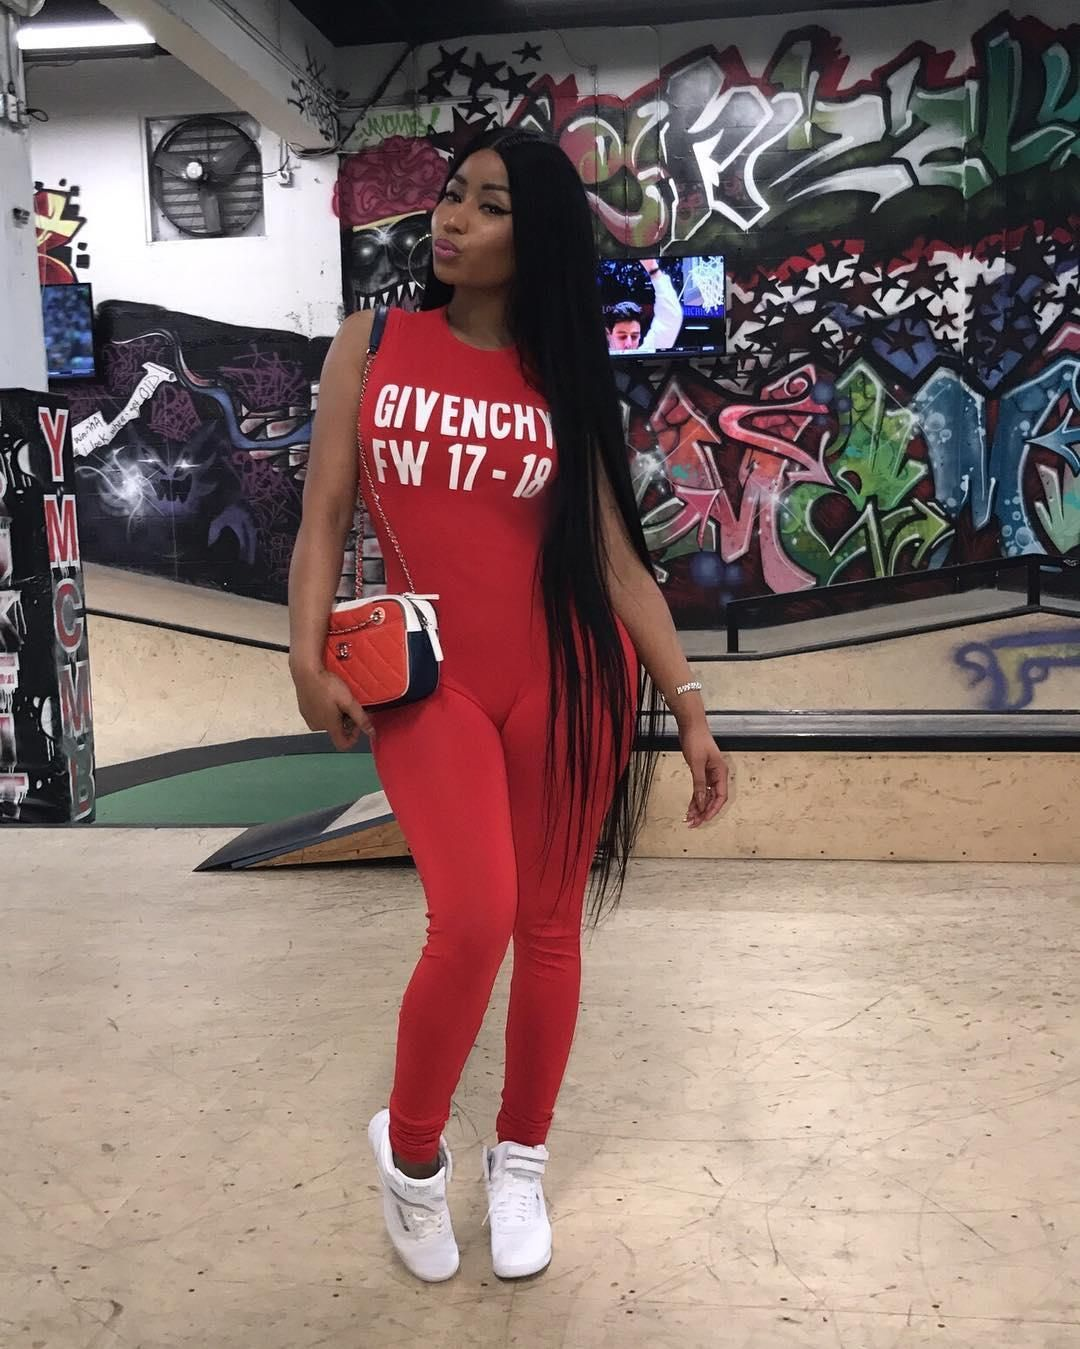 b50e8511dca3 Nicki Minaj shows her style at Lil Wayne s party wearing her Givenchy red  jumpsuit.